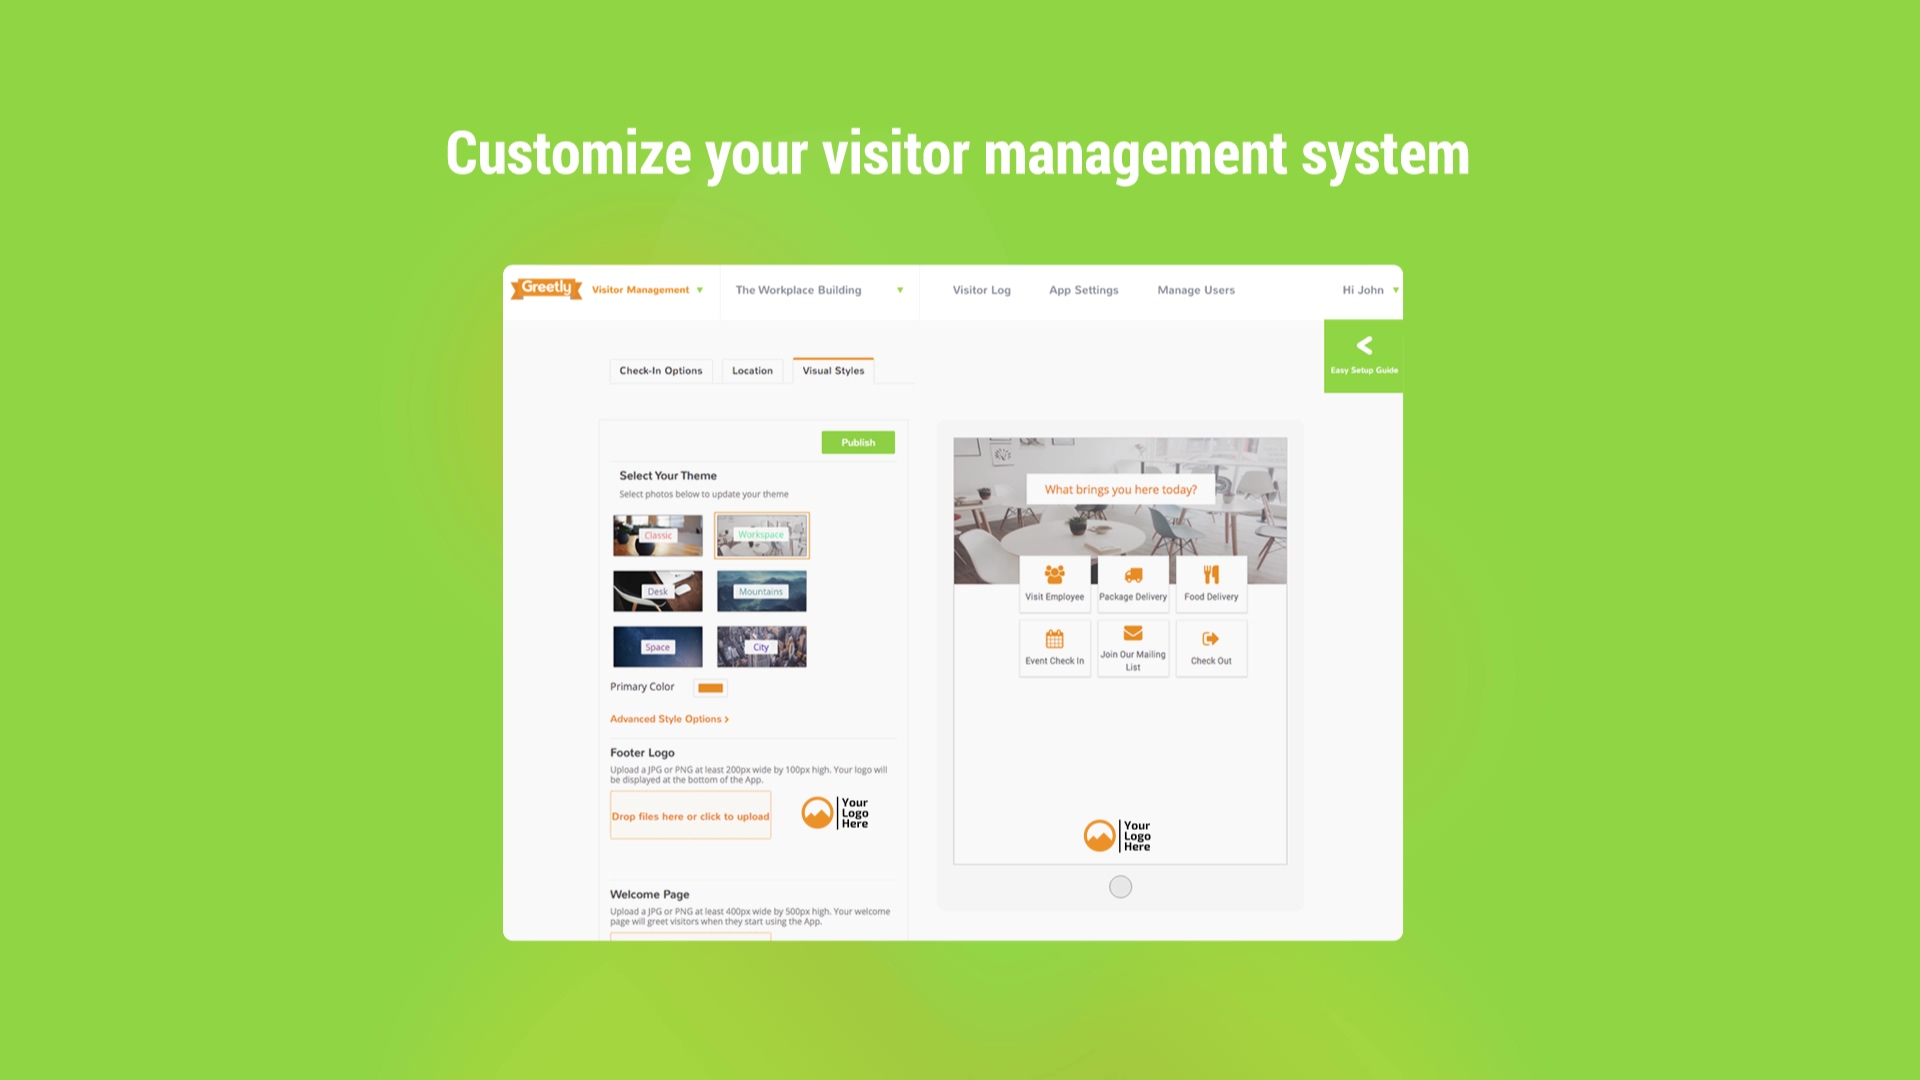 award-winning-visitor-management-system-how-it-works